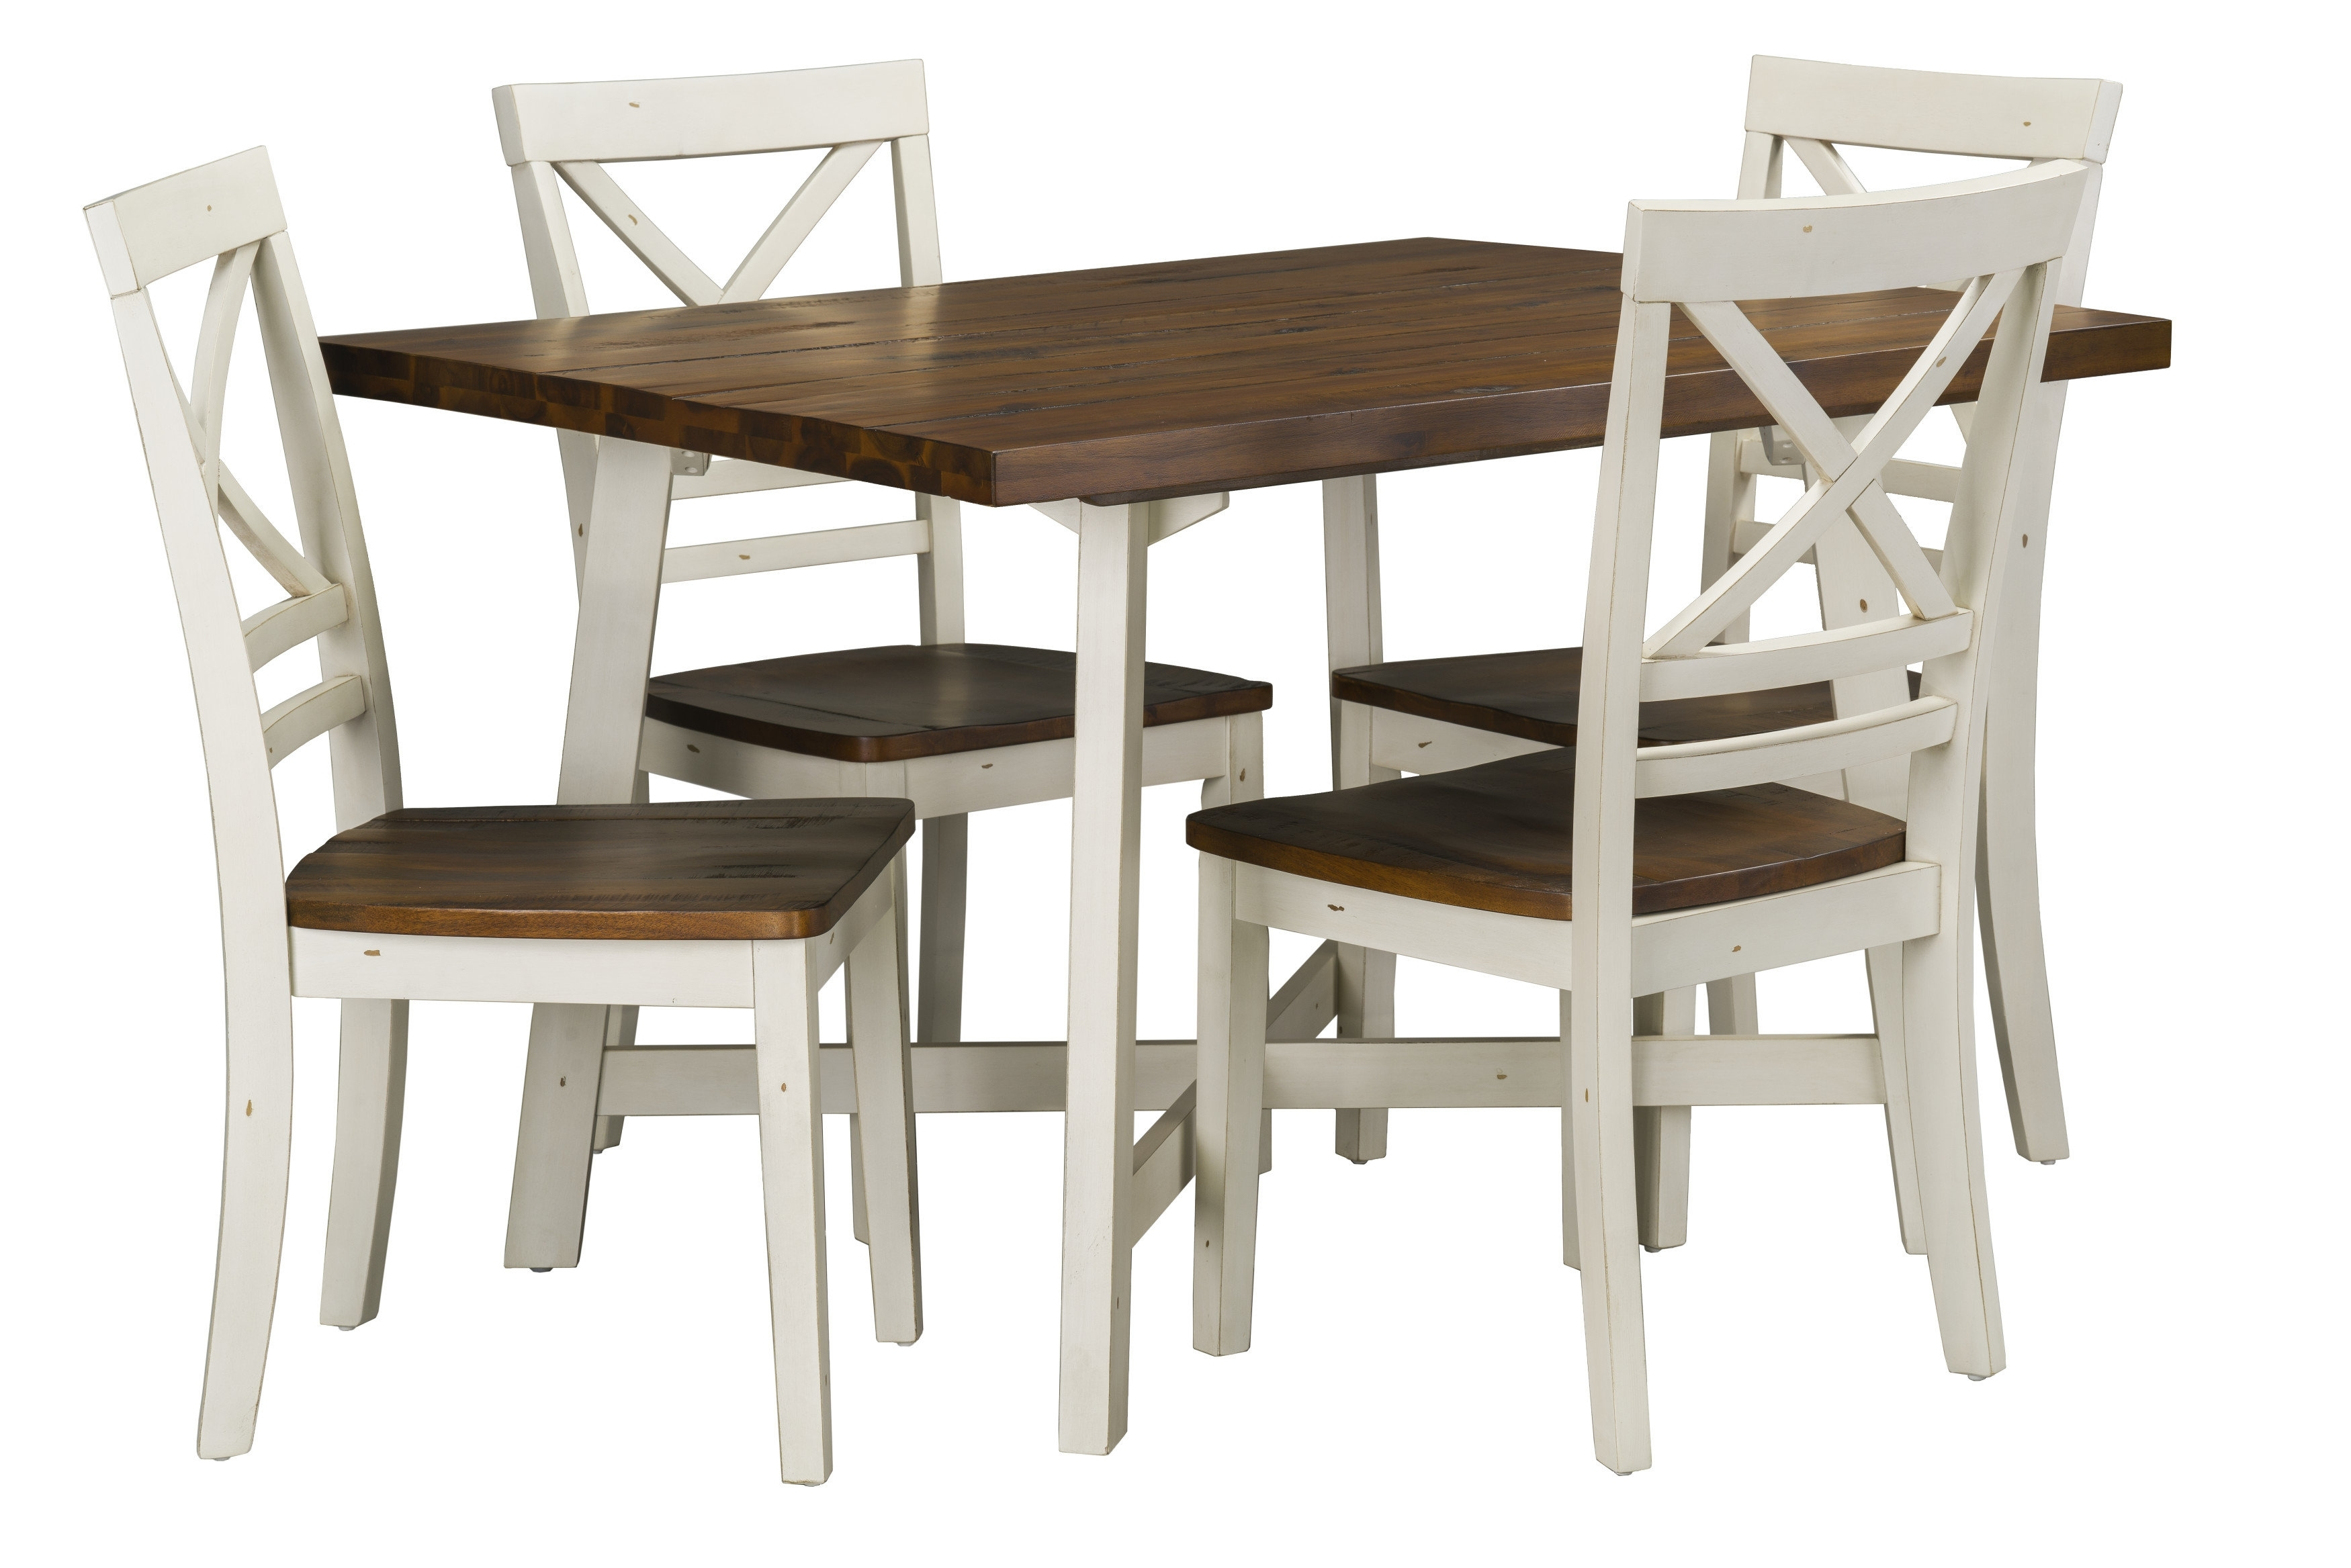 August Grove Dunnes 5 Piece Dining Set & Reviews | Wayfair Pertaining To 2017 Cora 5 Piece Dining Sets (Image 10 of 20)